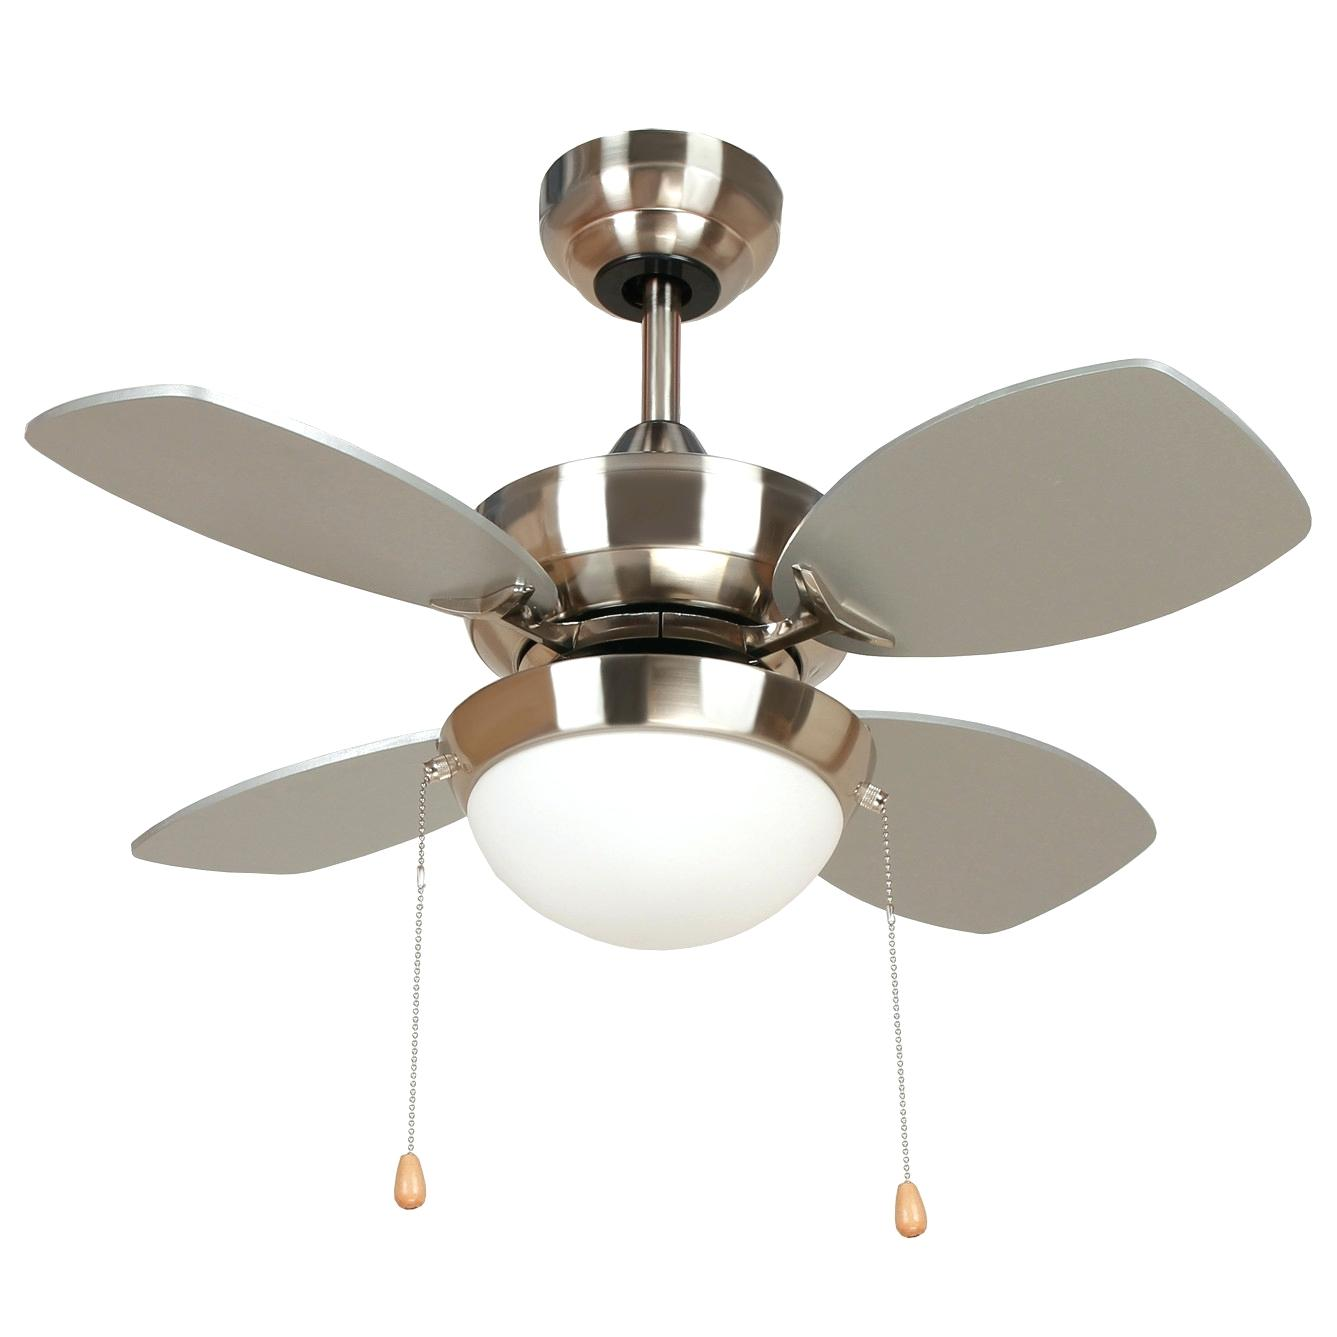 Asian Ceiling Fans 10 Ways To Make Your Home Looking